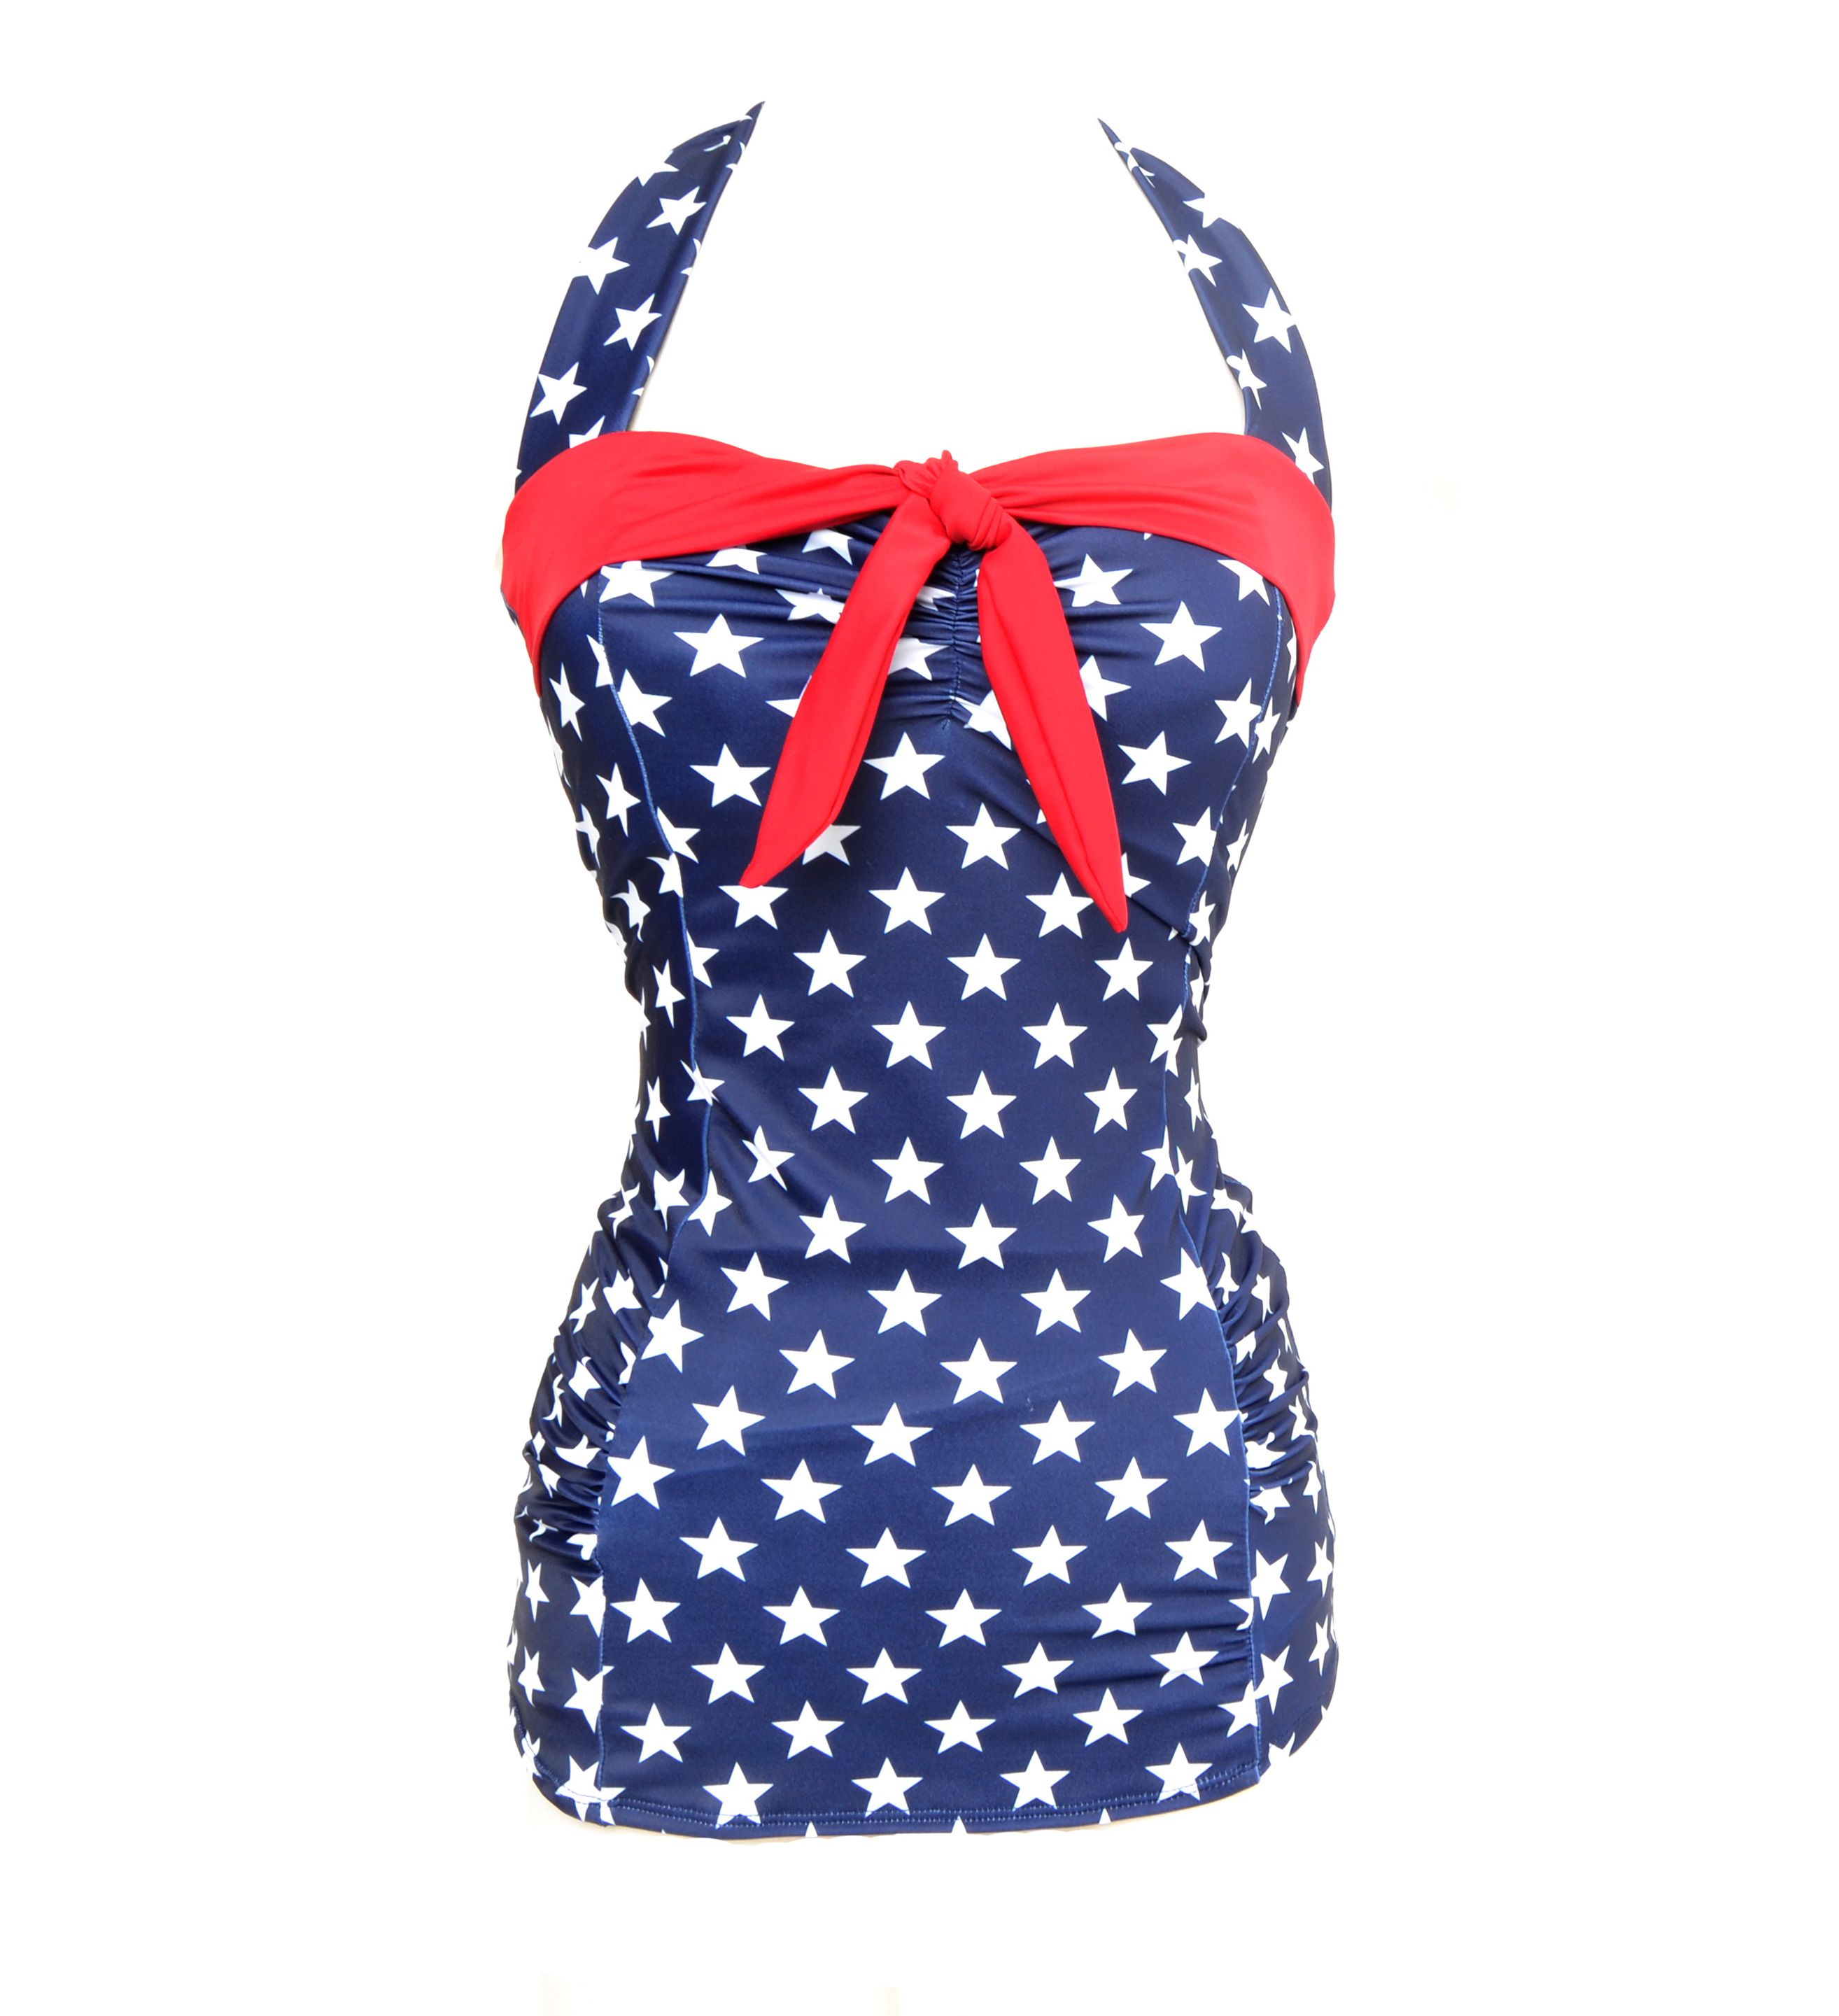 b8961b43acf8 Retro Style Swimsuits for Women - Vintage Inspired Swimsuits